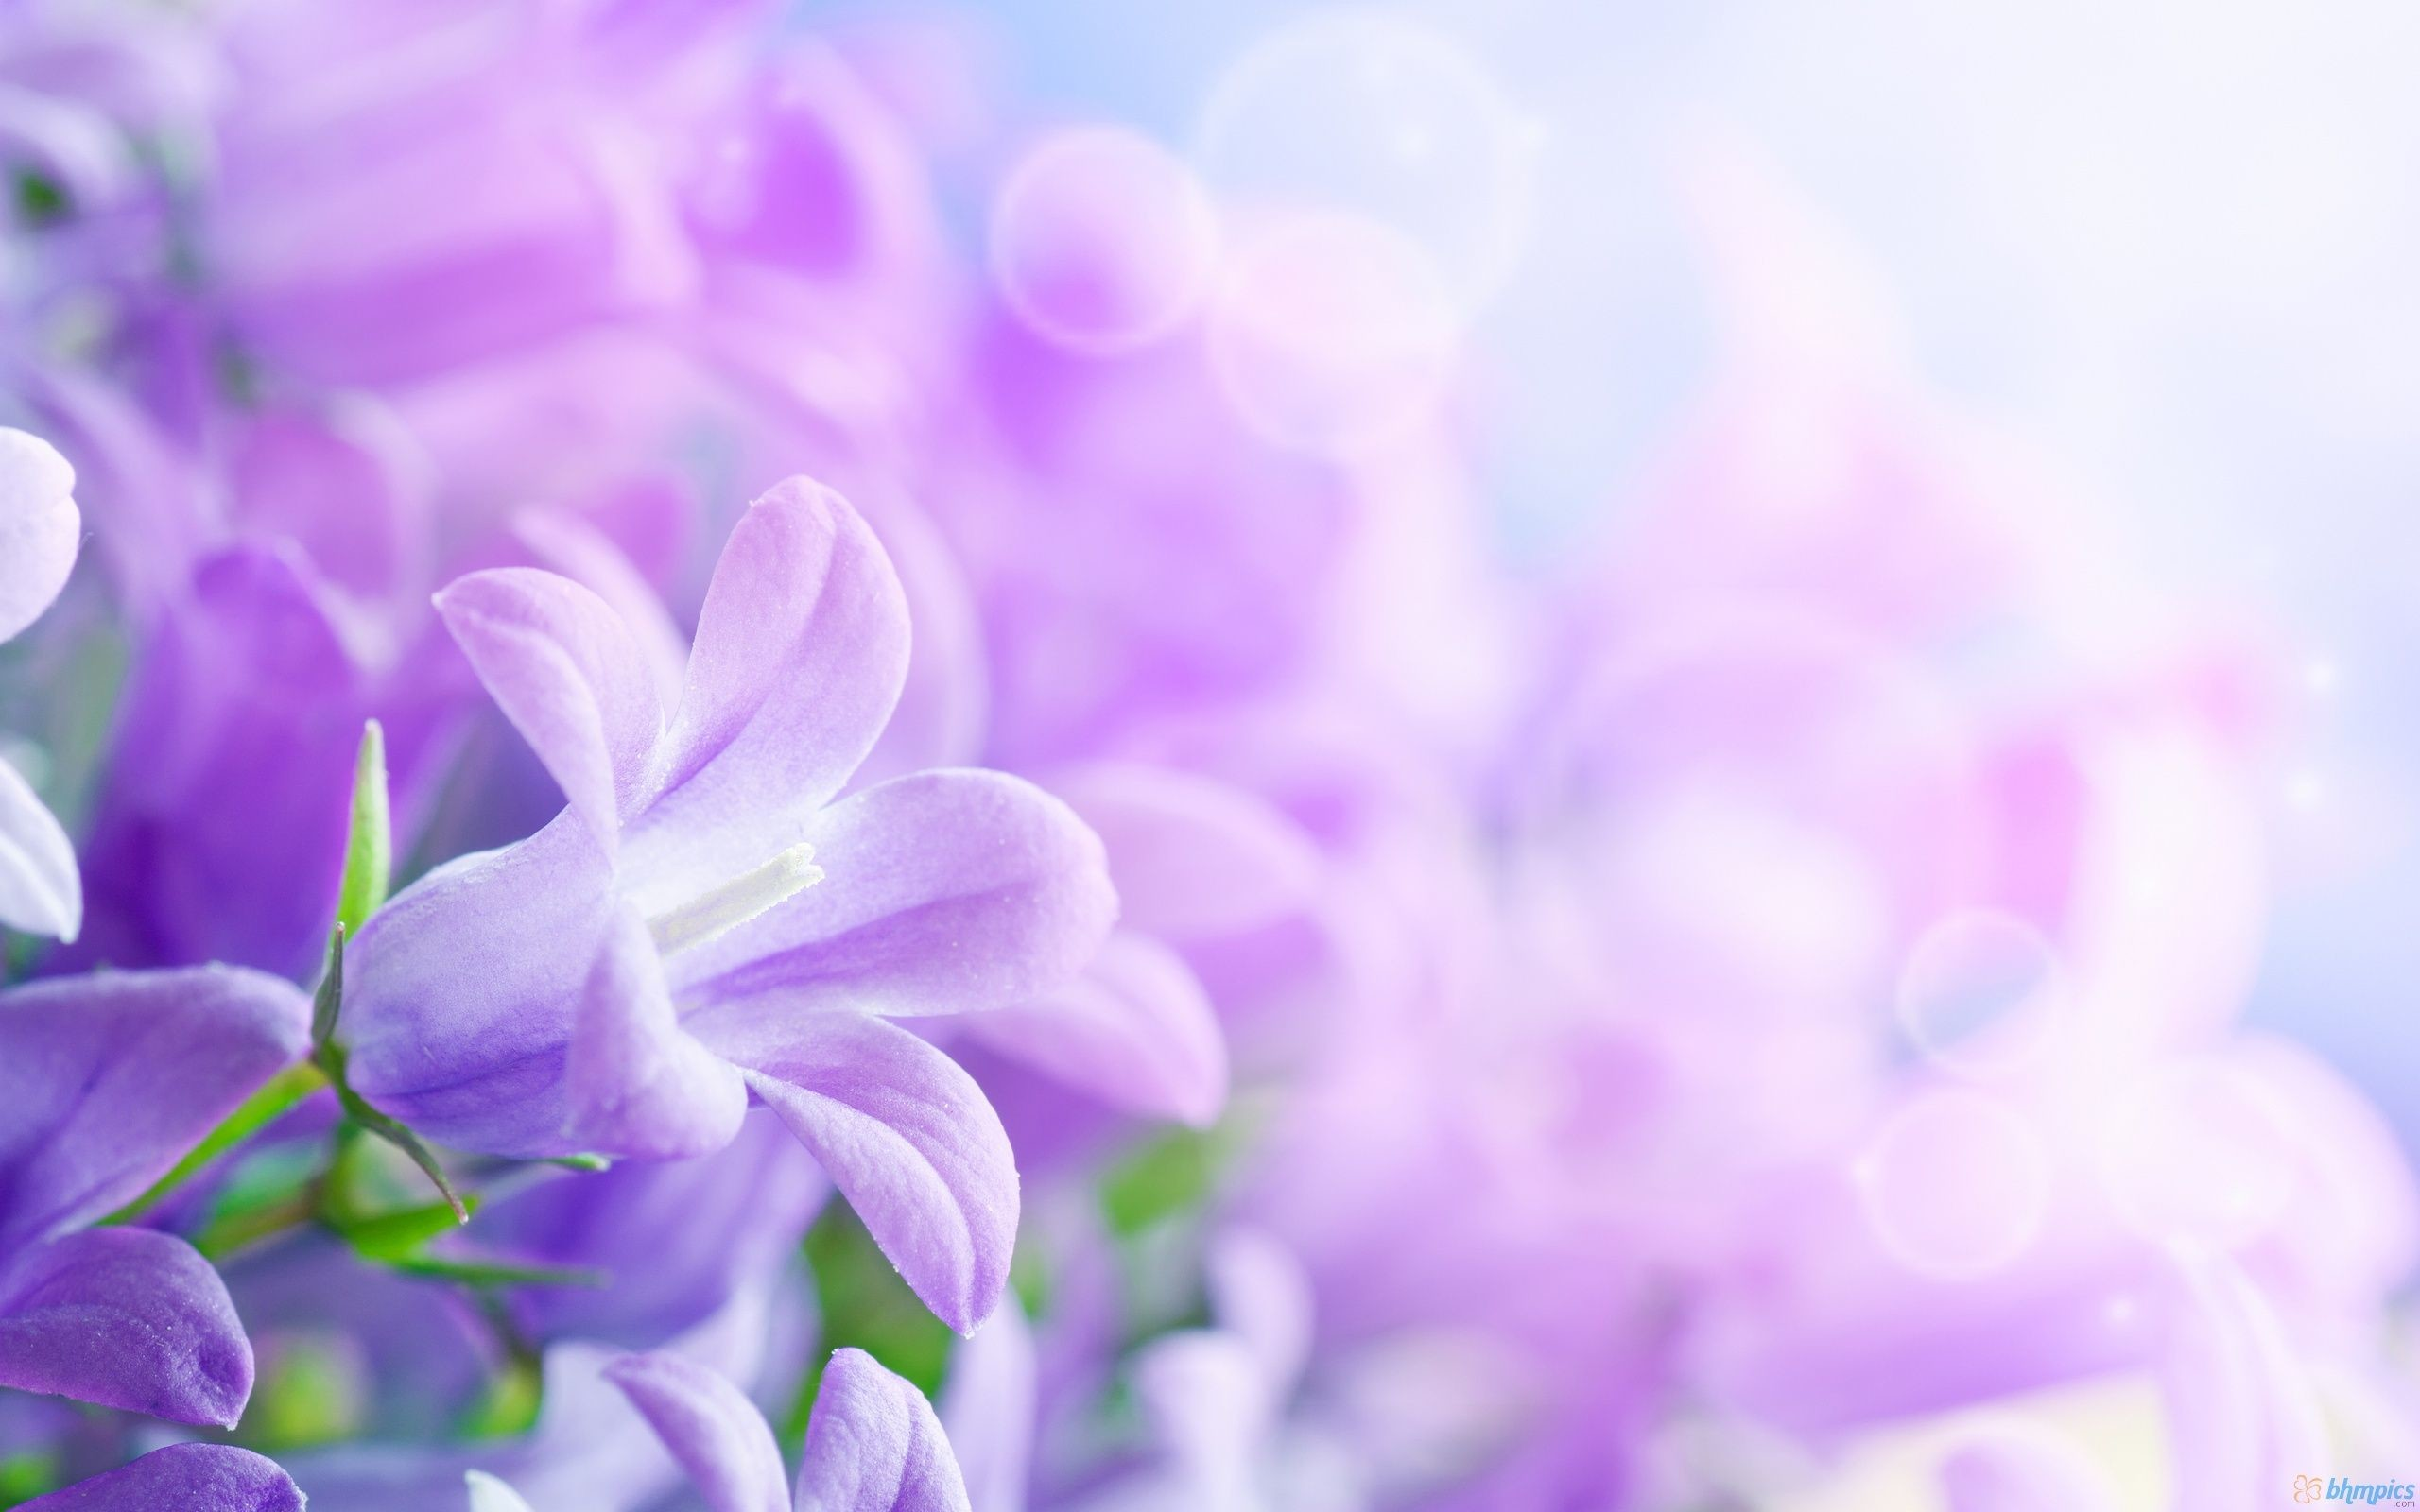 Flower Backgrounds Wallpapers – Wallpaper Cave